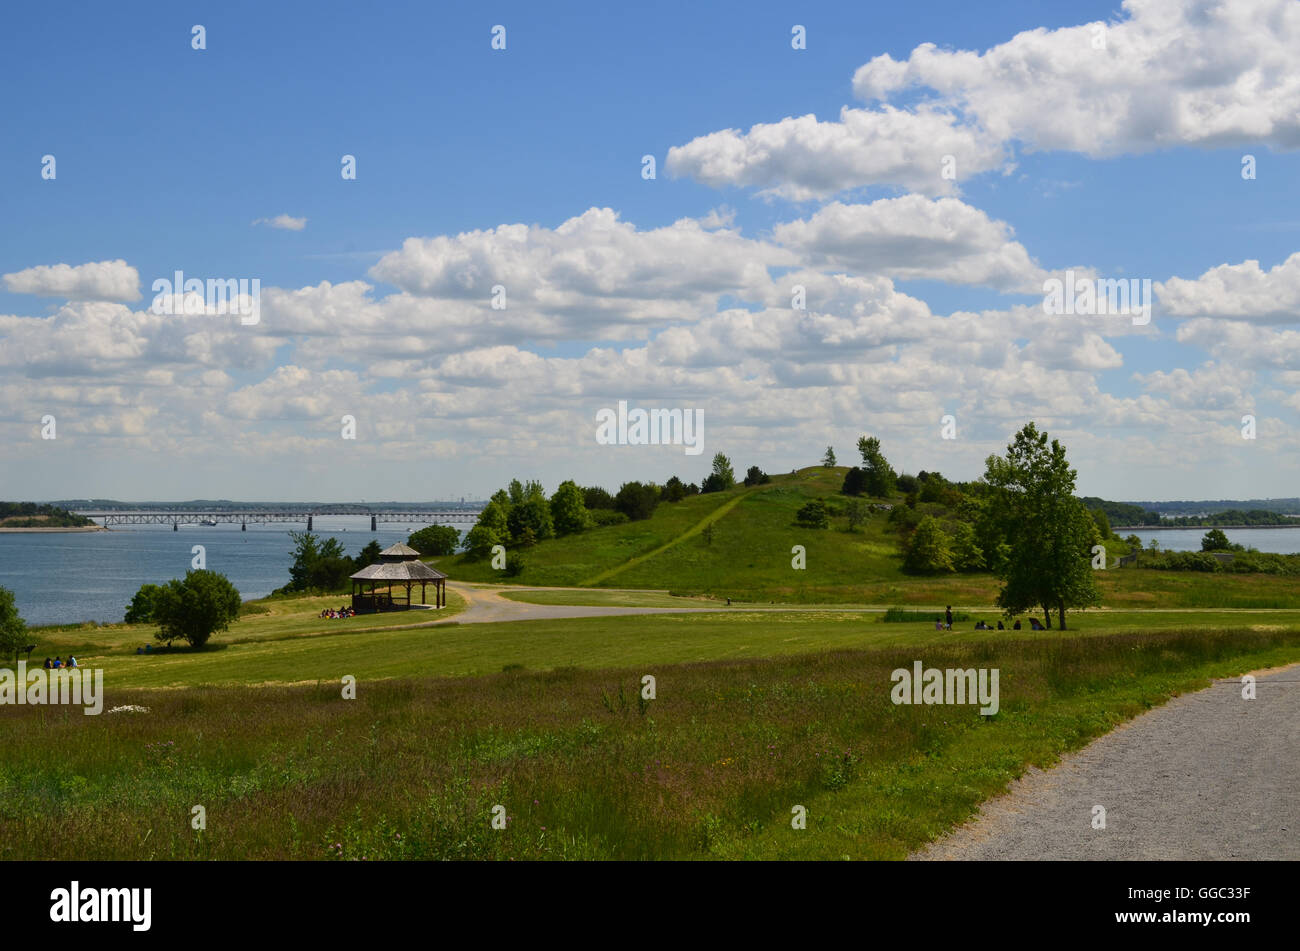 Lush Spectacle Island  with fluffy clouds and green grass. - Stock Image